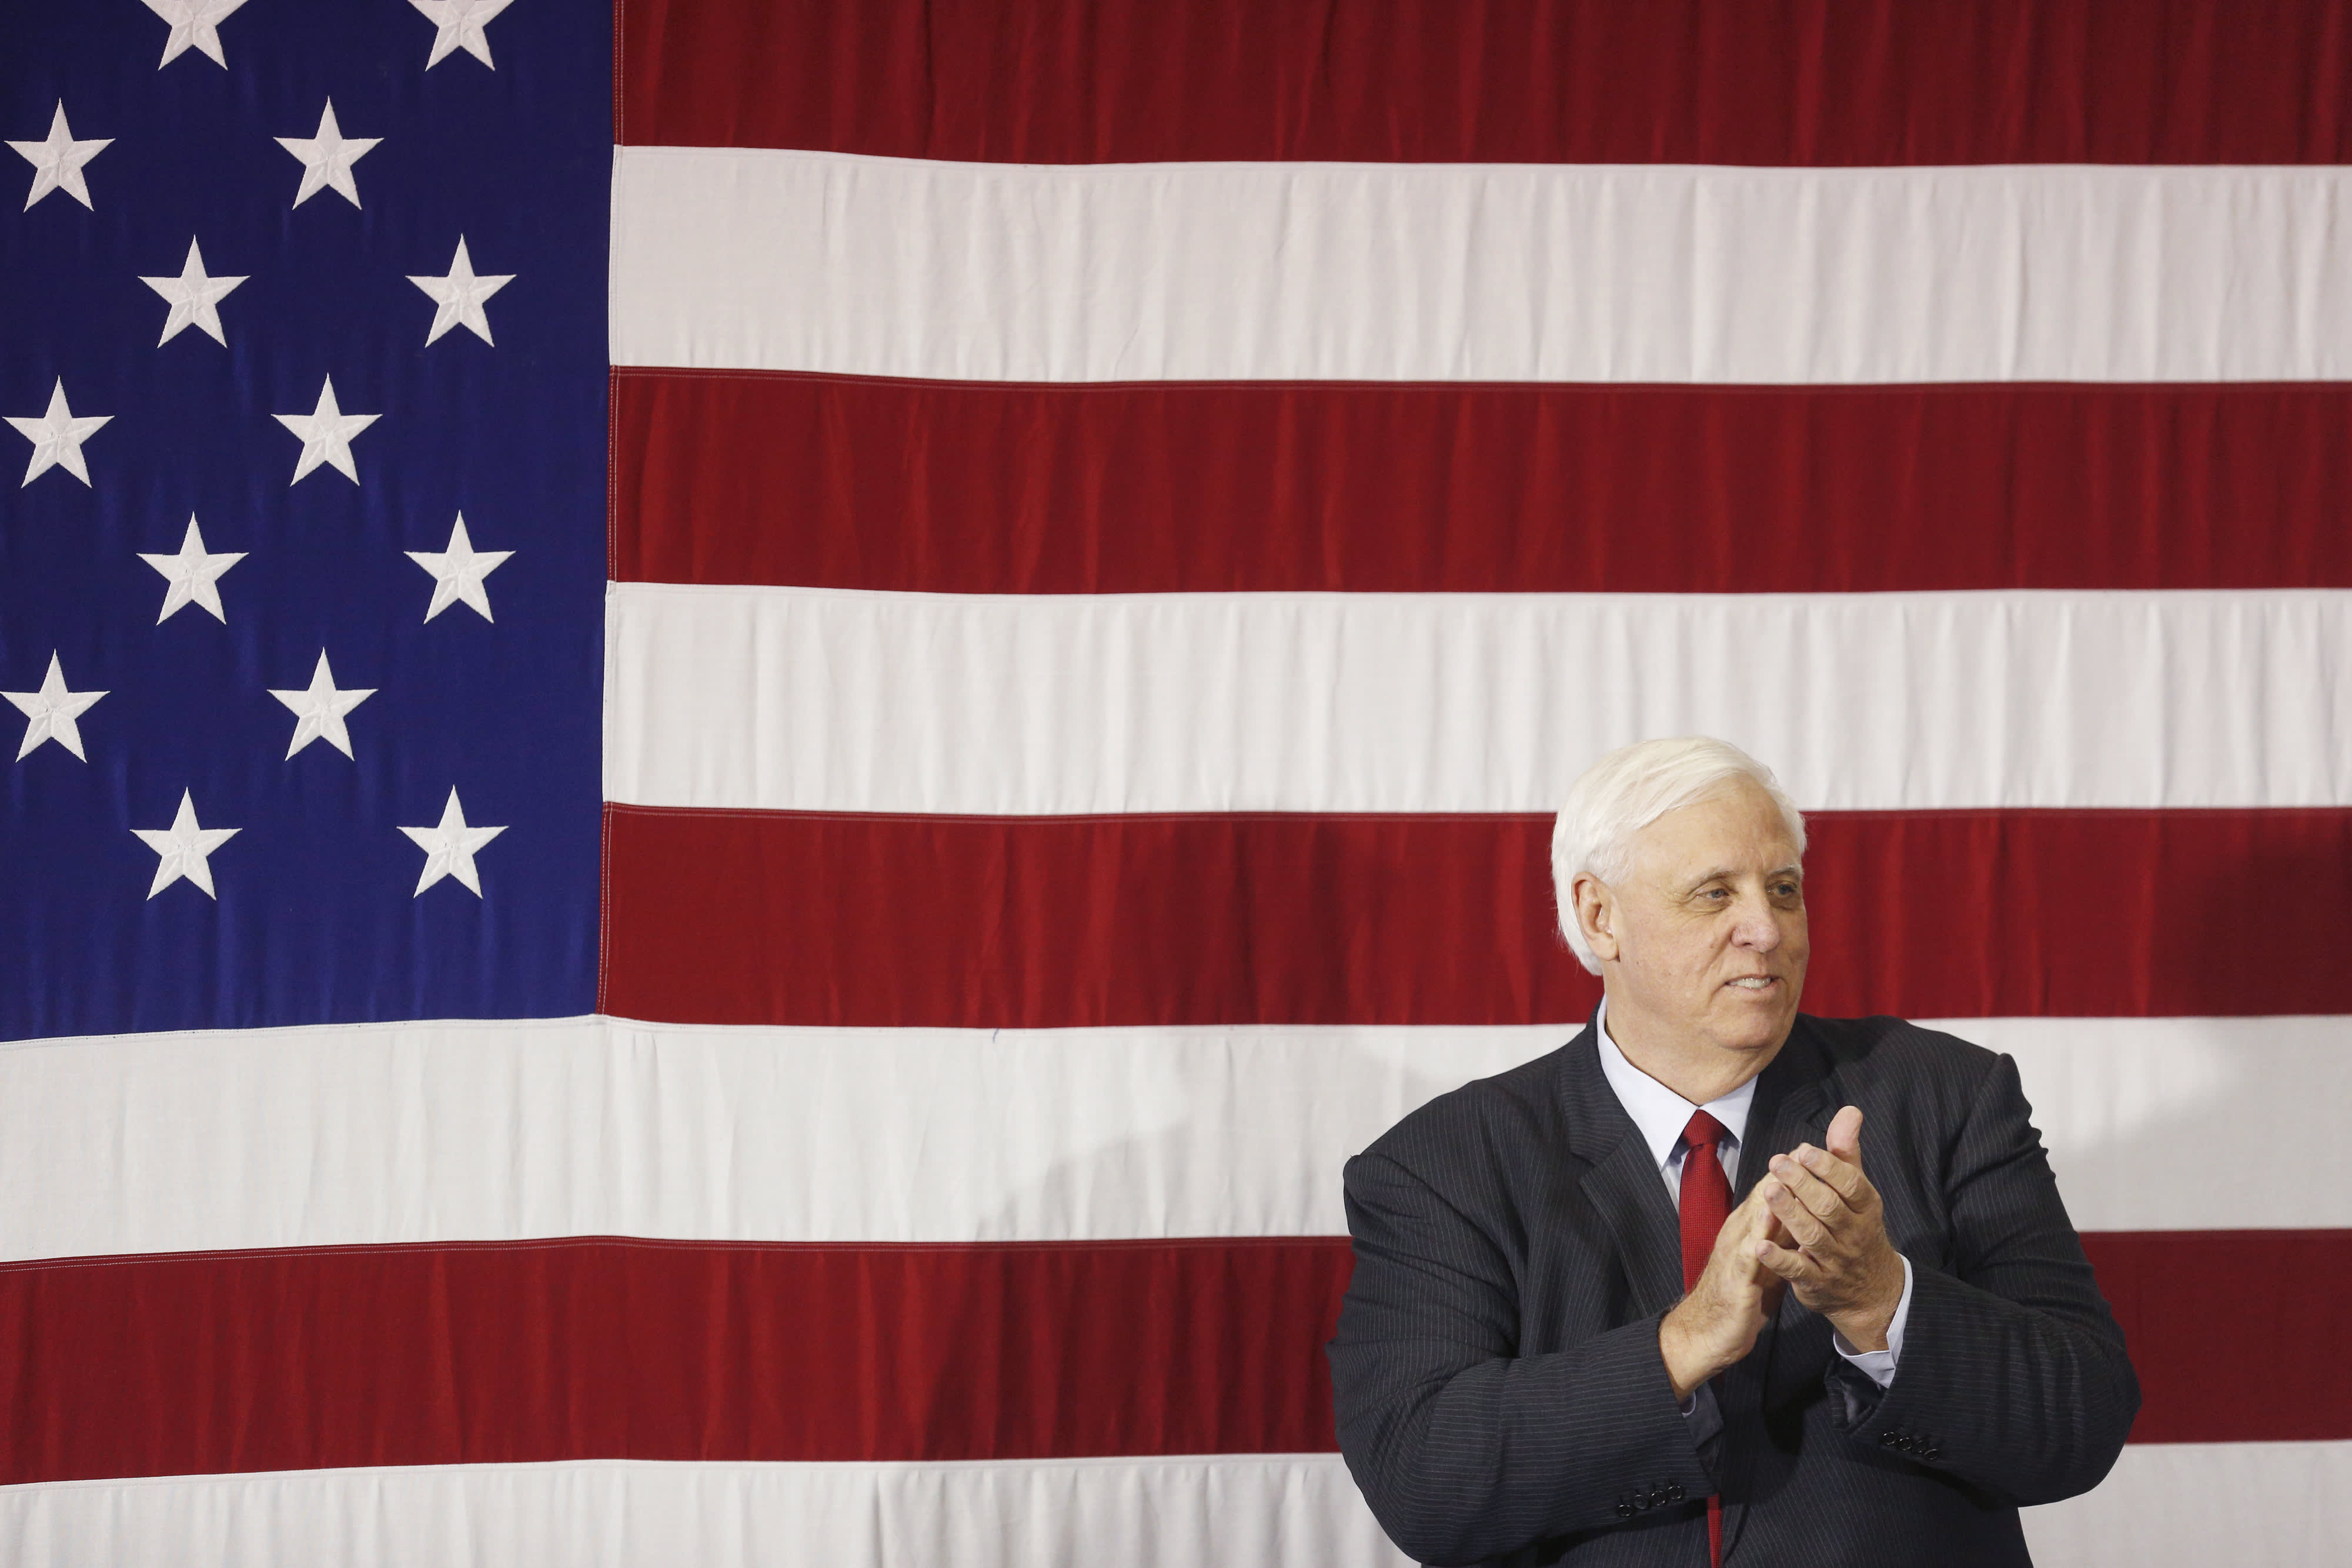 WV Gov. Jim Justice acknowledges Biden presidency, but says U.S. is not ready to move away from coal and gas